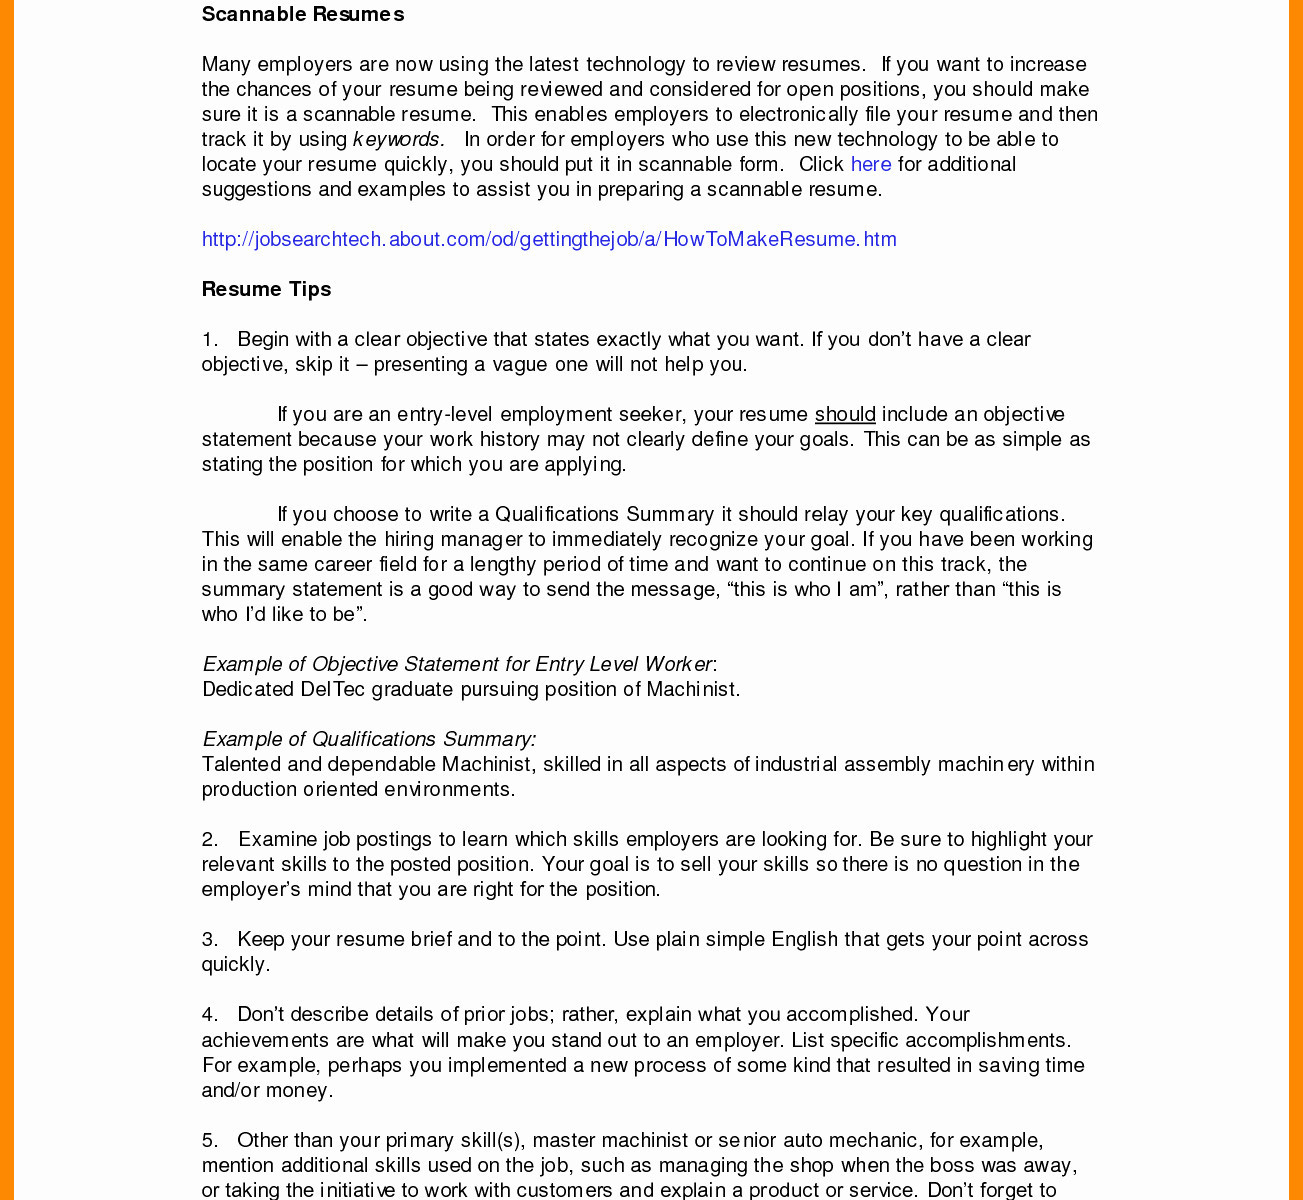 job description of sales executive in automobile industry resume example-Sales Executive Job Description In Automobile Industry Resume Luxury Hire Car Job Resume Luxury 63 Lovely 1-h